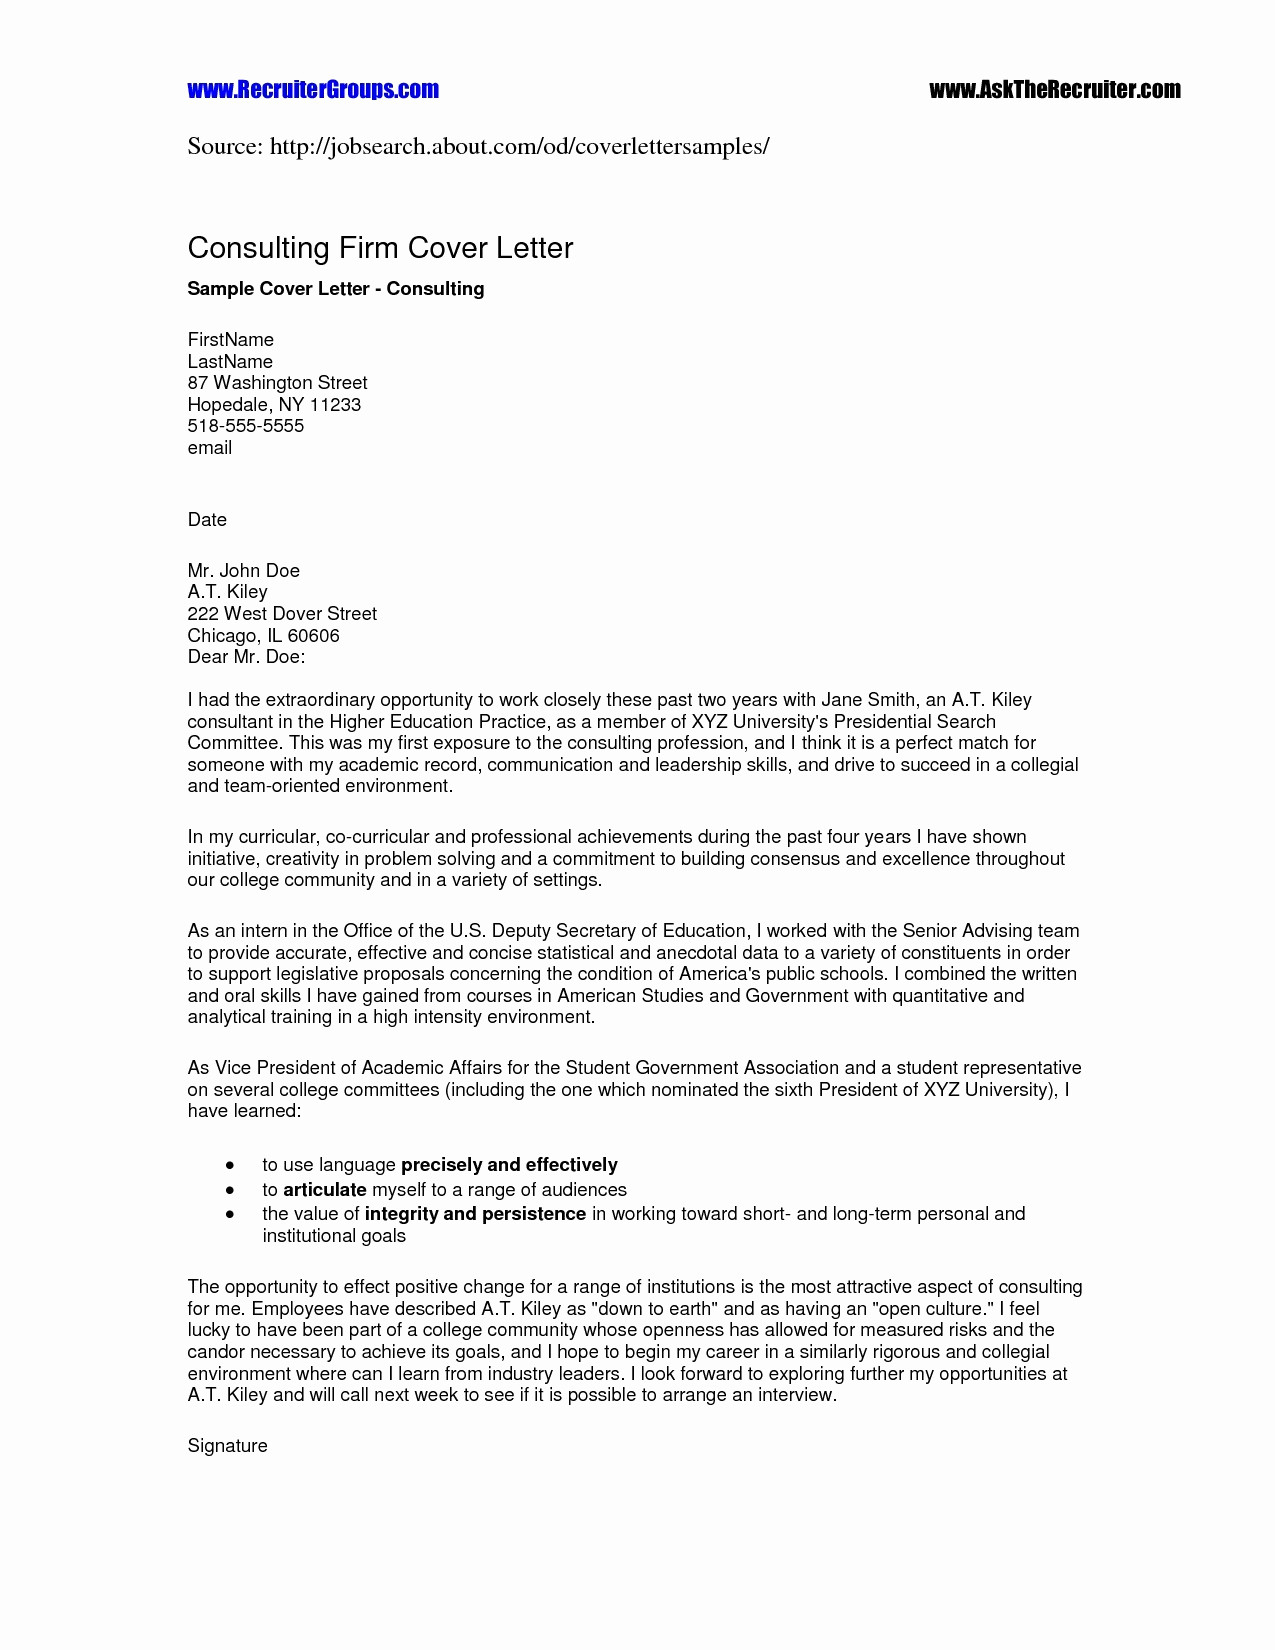 Final Demand Letter Template - Sample Demand Letter for Payment Debt Inspirational Loan Payoff